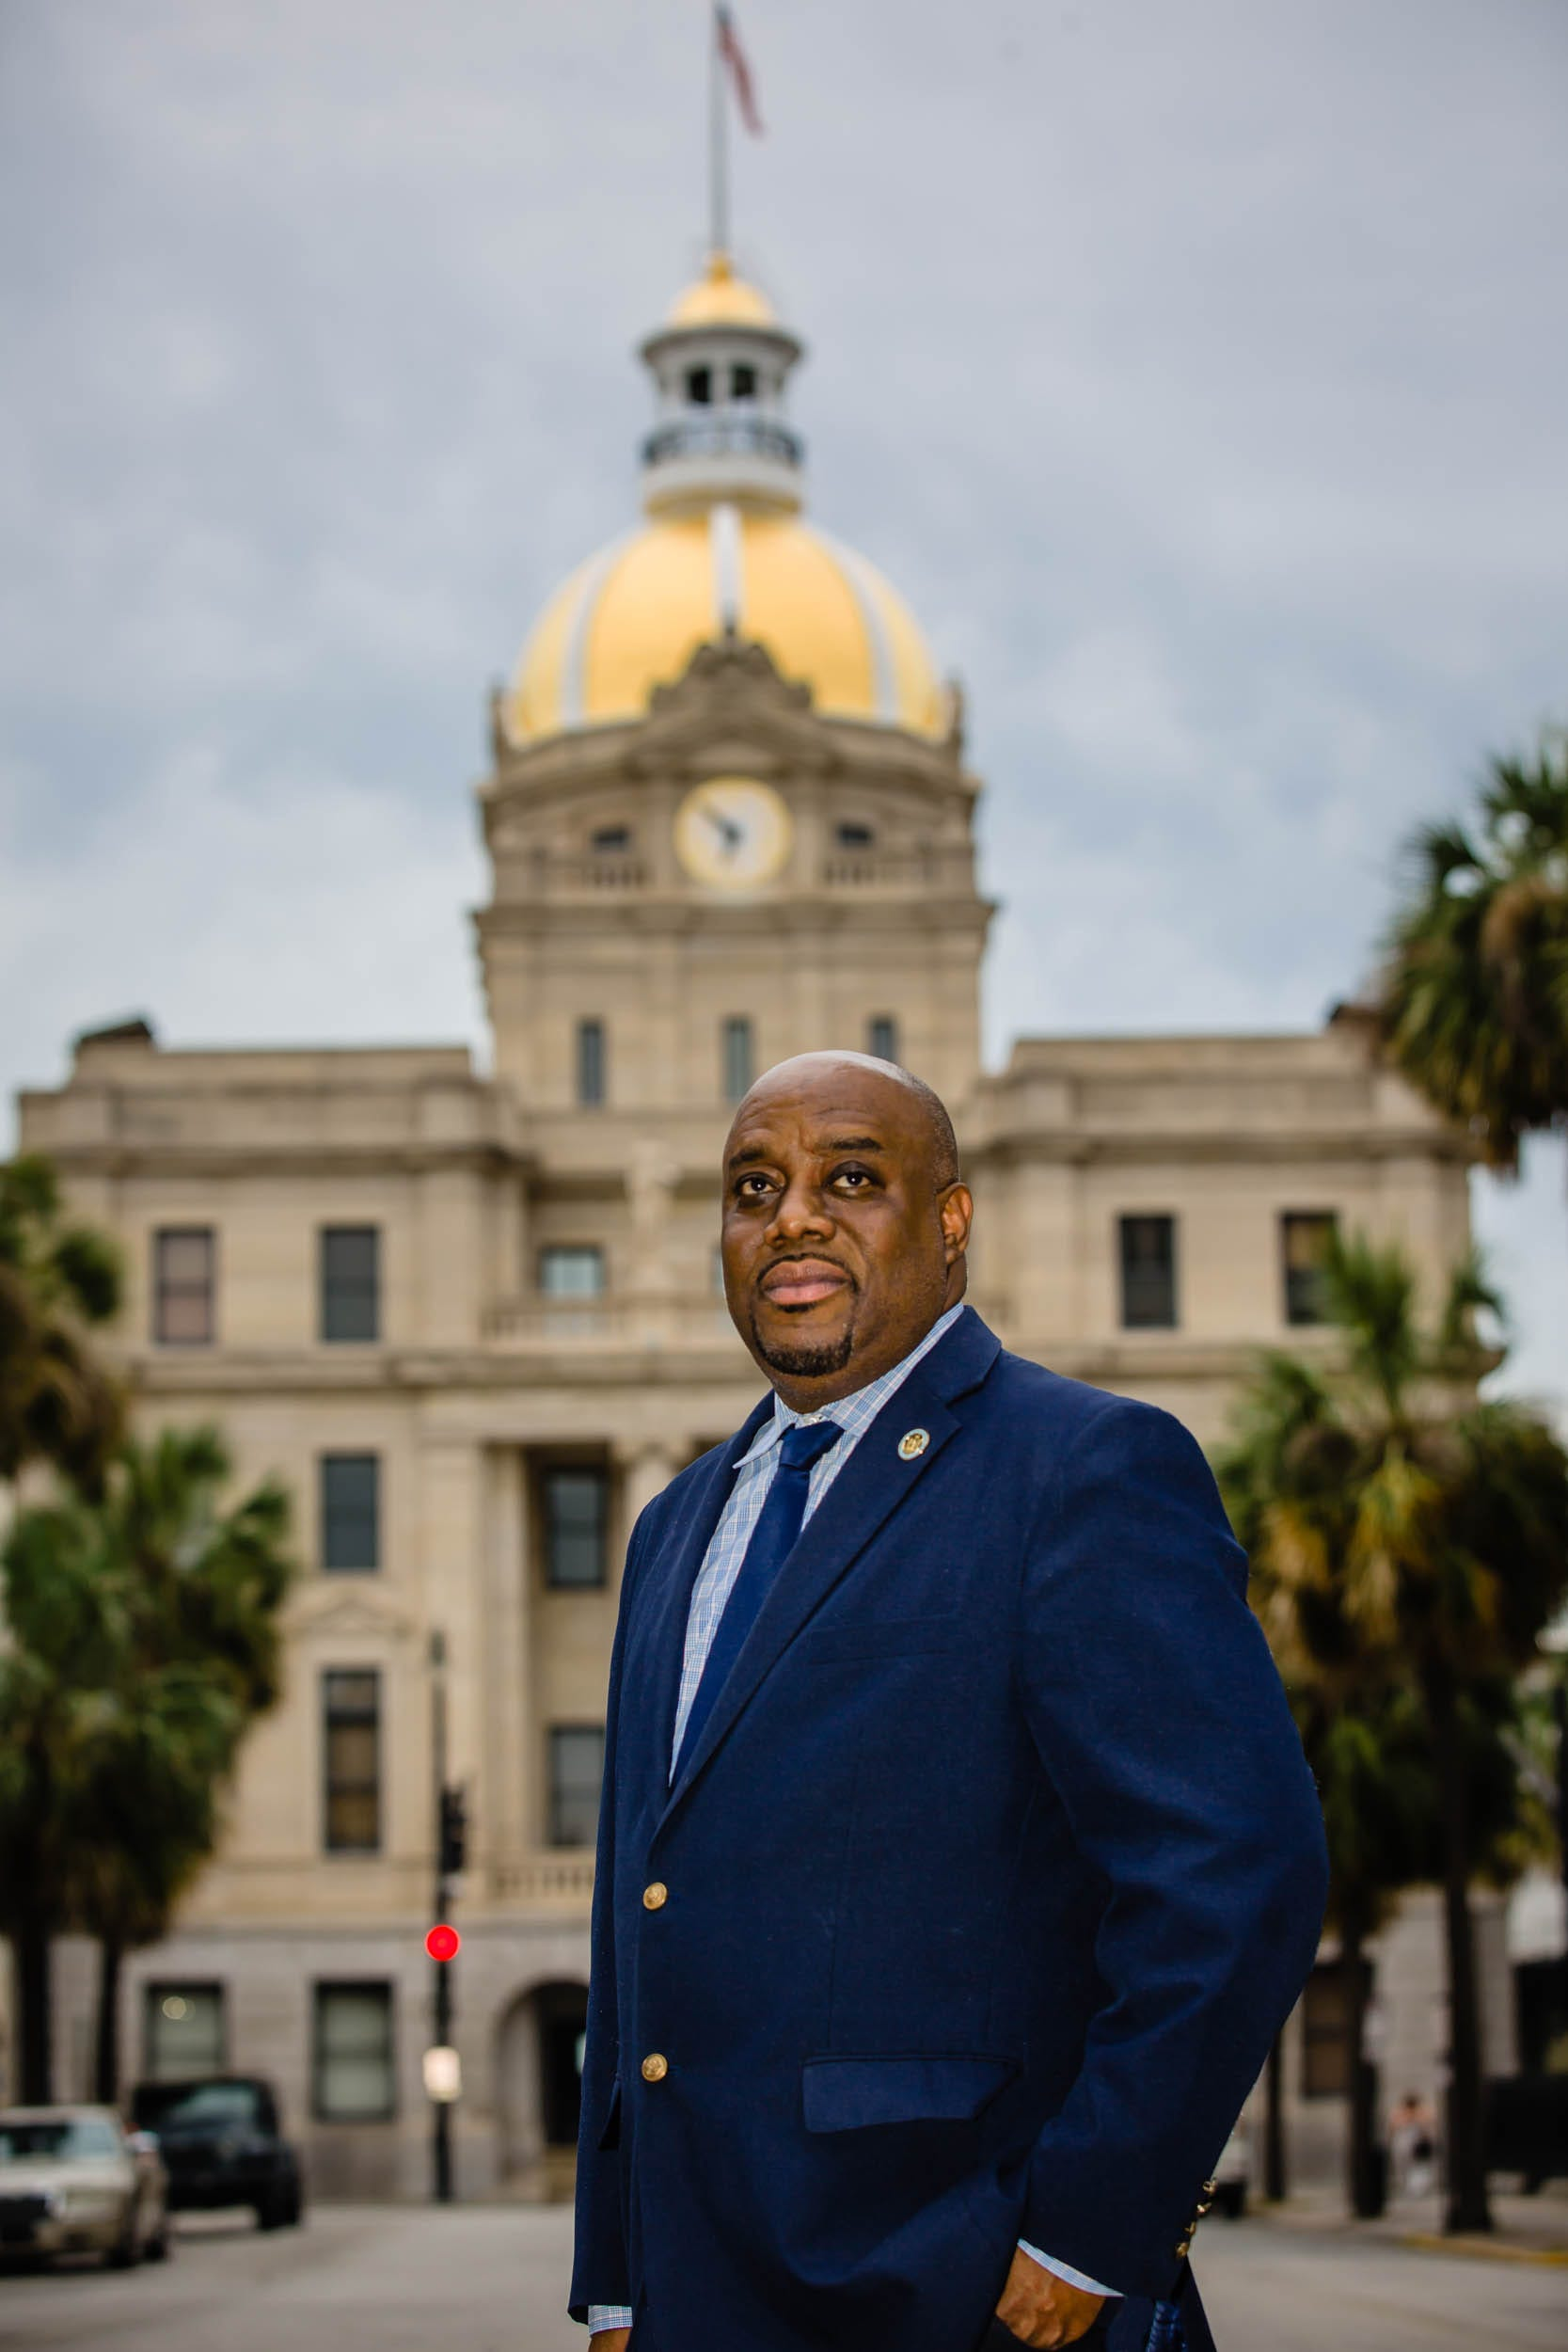 Savannah Mayor Van Johnson II stands in front of Savannah City Hall, where hundreds gathered Sunday, May 31, 2020, to peacefully protest the killing of George Floyd.